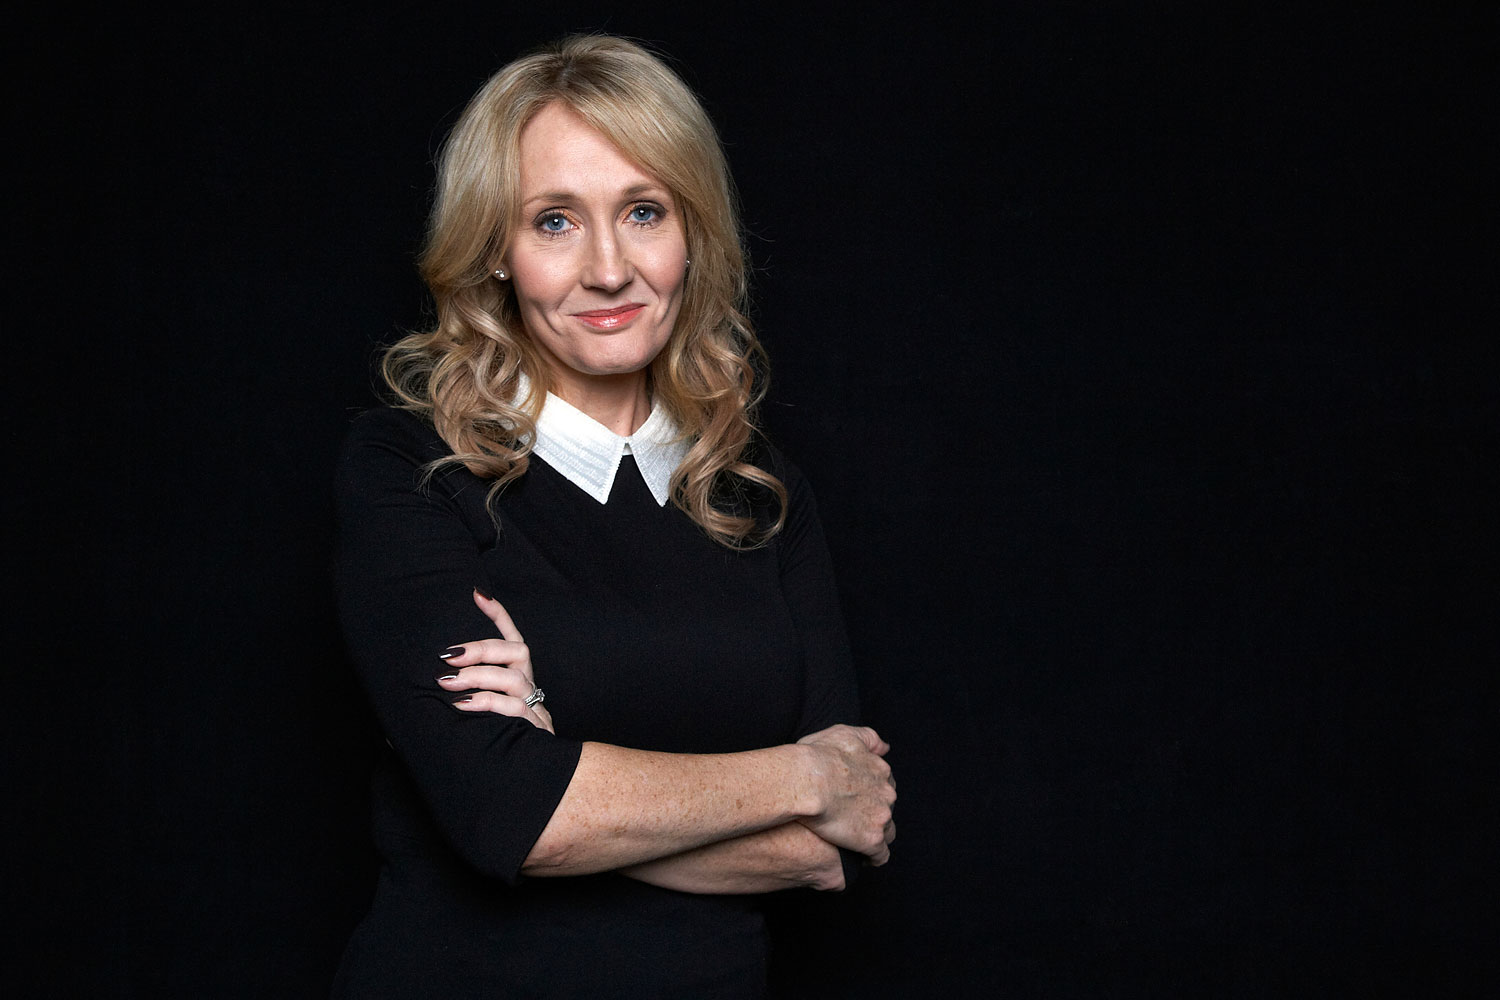 J.K. Rowling at an appearance to promote her book  The Casual Vacancy,  at The David H. Koch Theater in New York, Oct. 16, 2012.